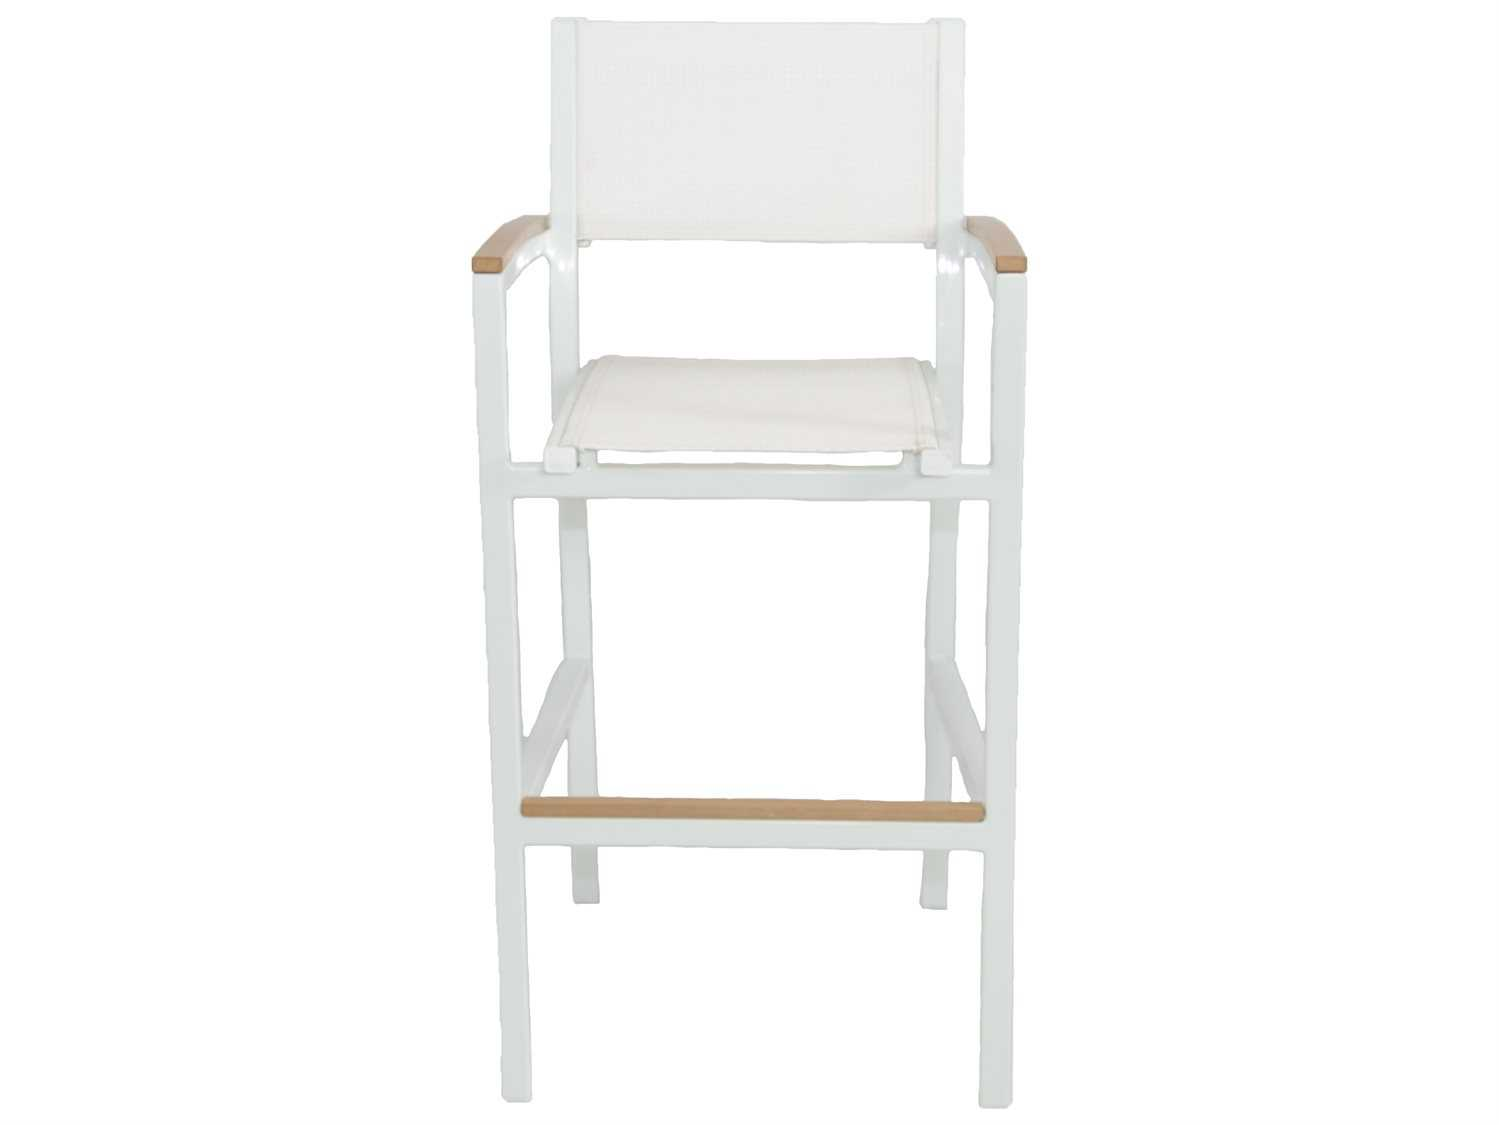 Patio heaven riviera aluminum bar chair with arms patr2270ih for Patio heaven